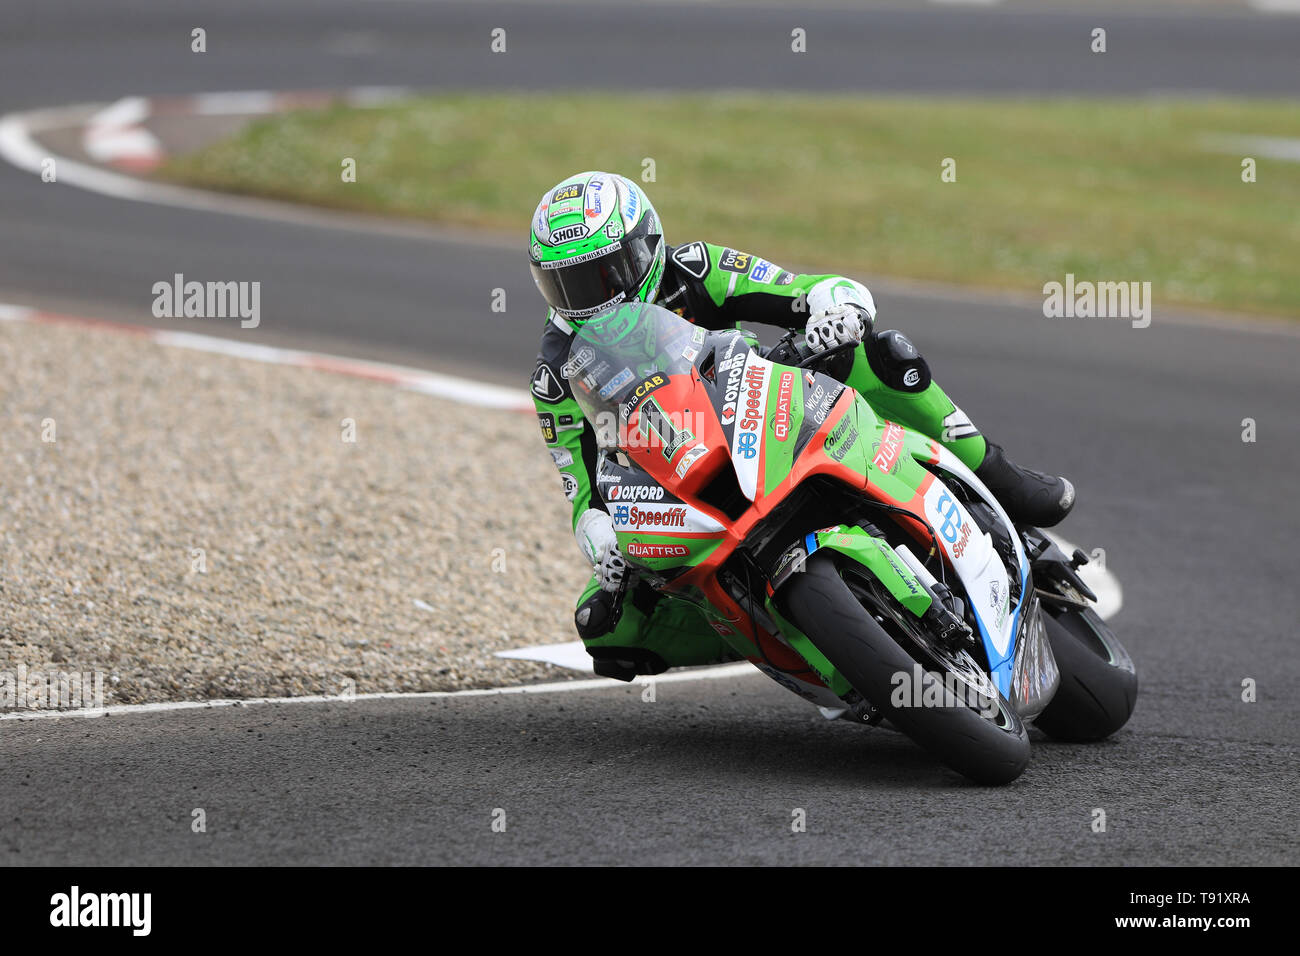 Portrush, Northern Ireland. 16th May, 2019. International North West 200 Motorcycle road racing, Thursday practice and evening racing; Glenn Irwin was 2nd fastest on the Quattro Plant Wicked Coatings Kawasaki during the SuperStock qualifying session Credit: Action Plus Sports/Alamy Live News - Stock Image